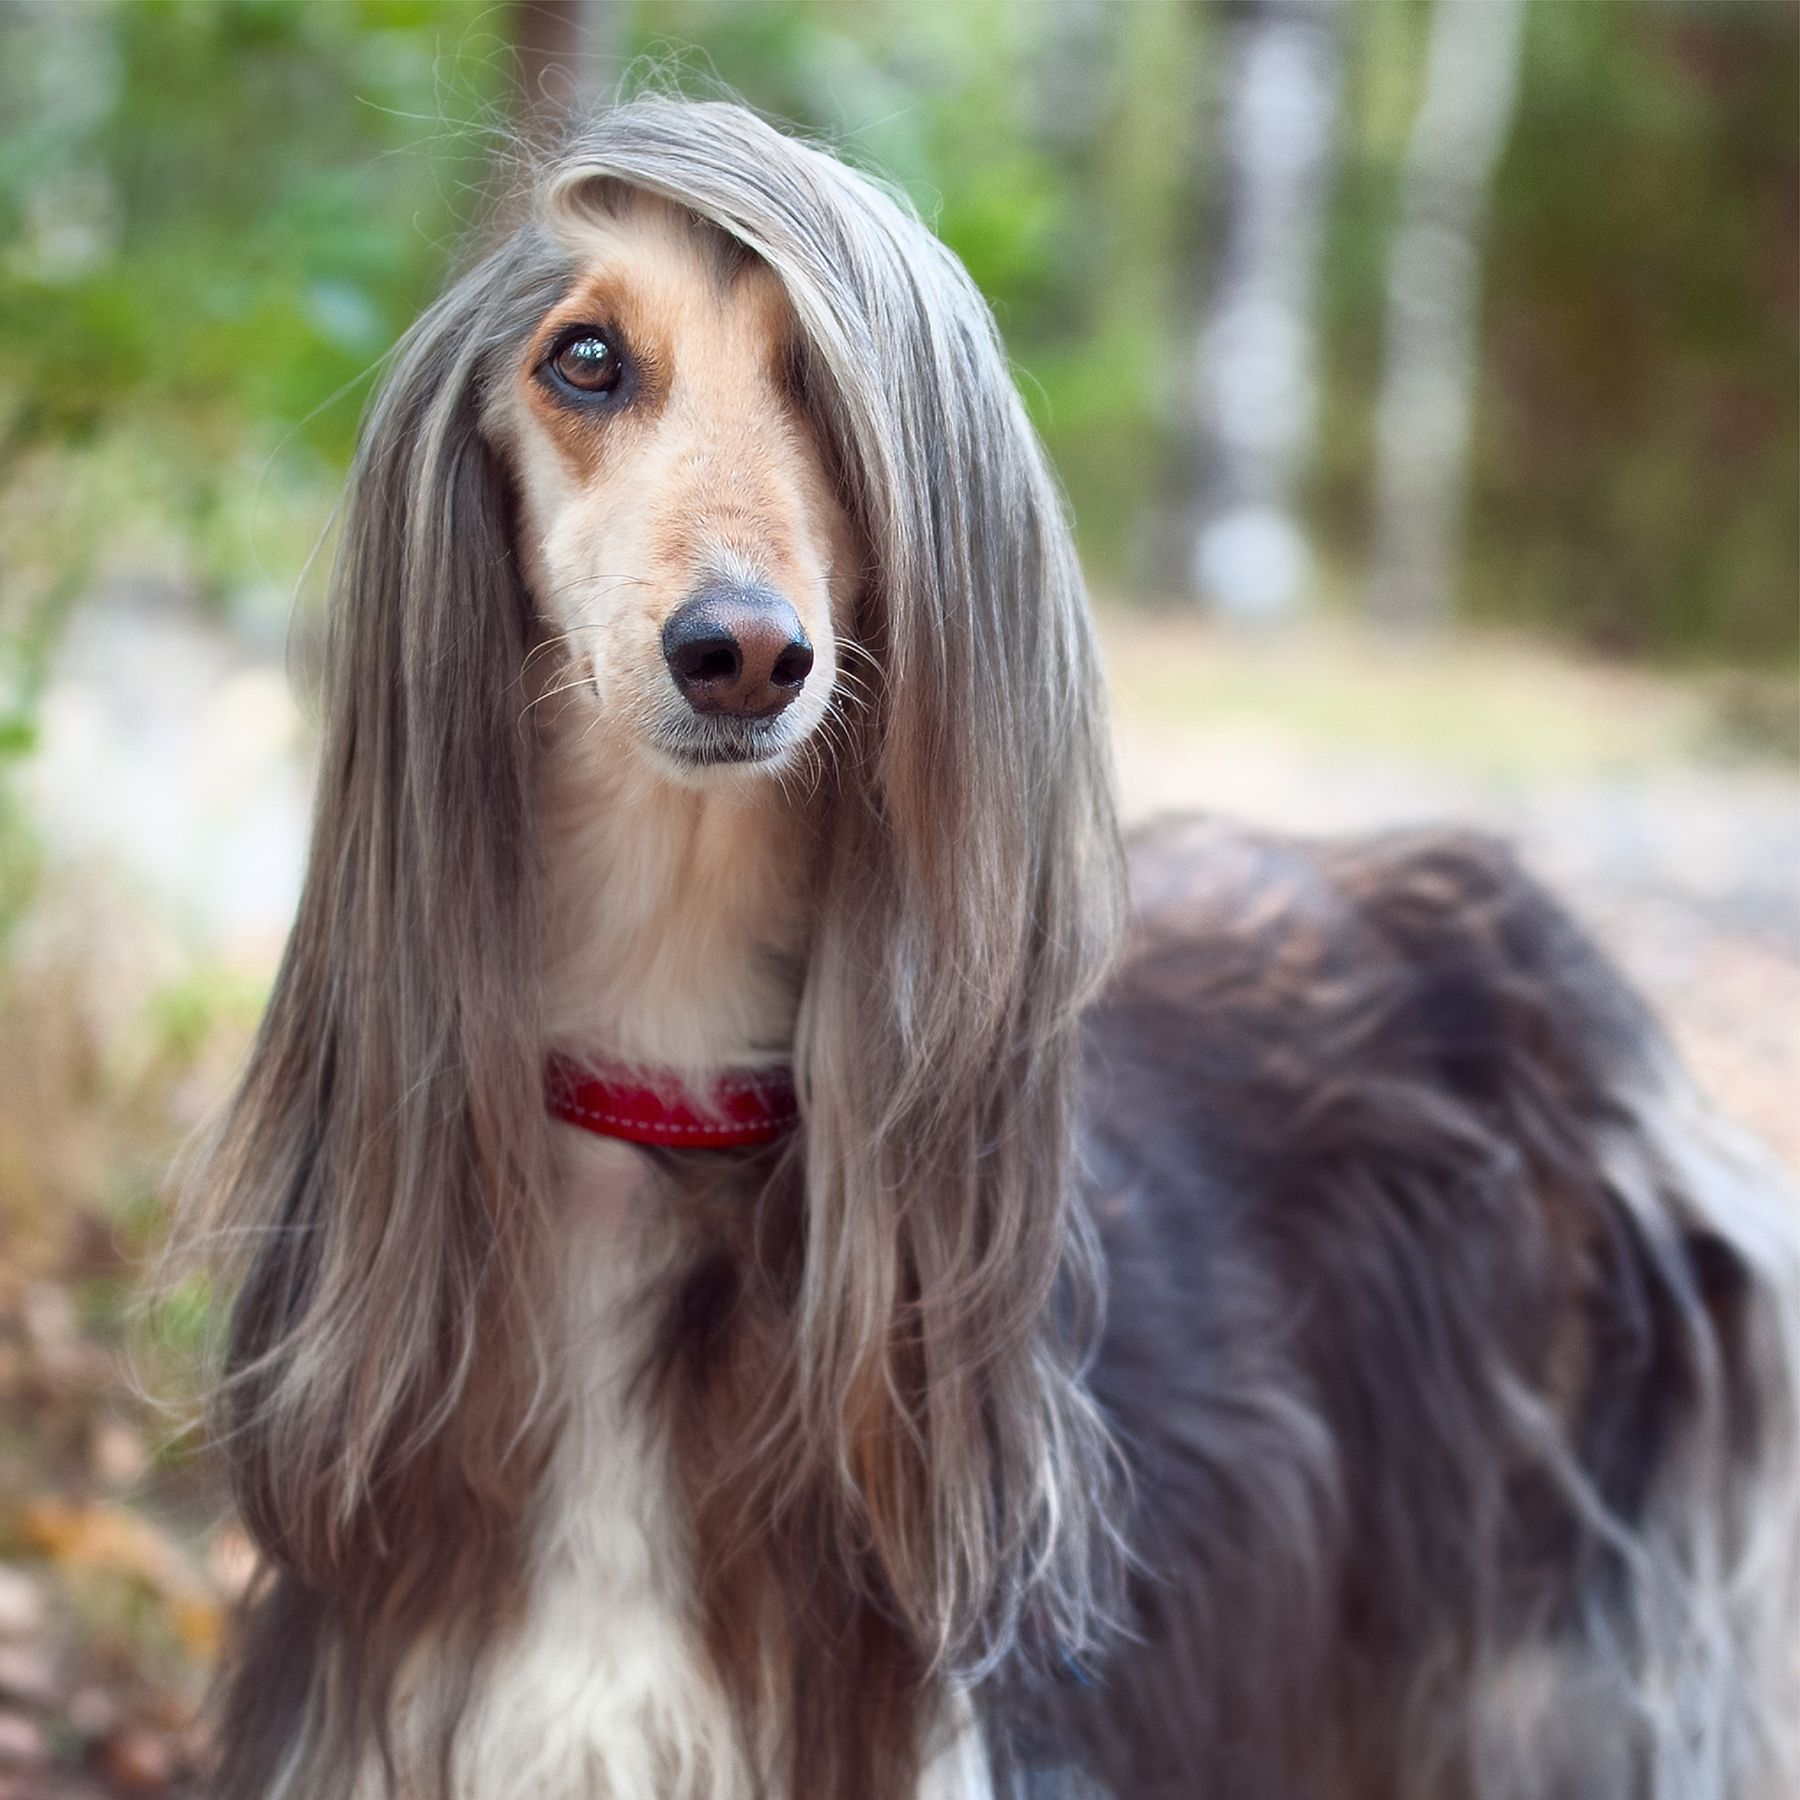 When your dog's hair looks better than yours... hairgoals